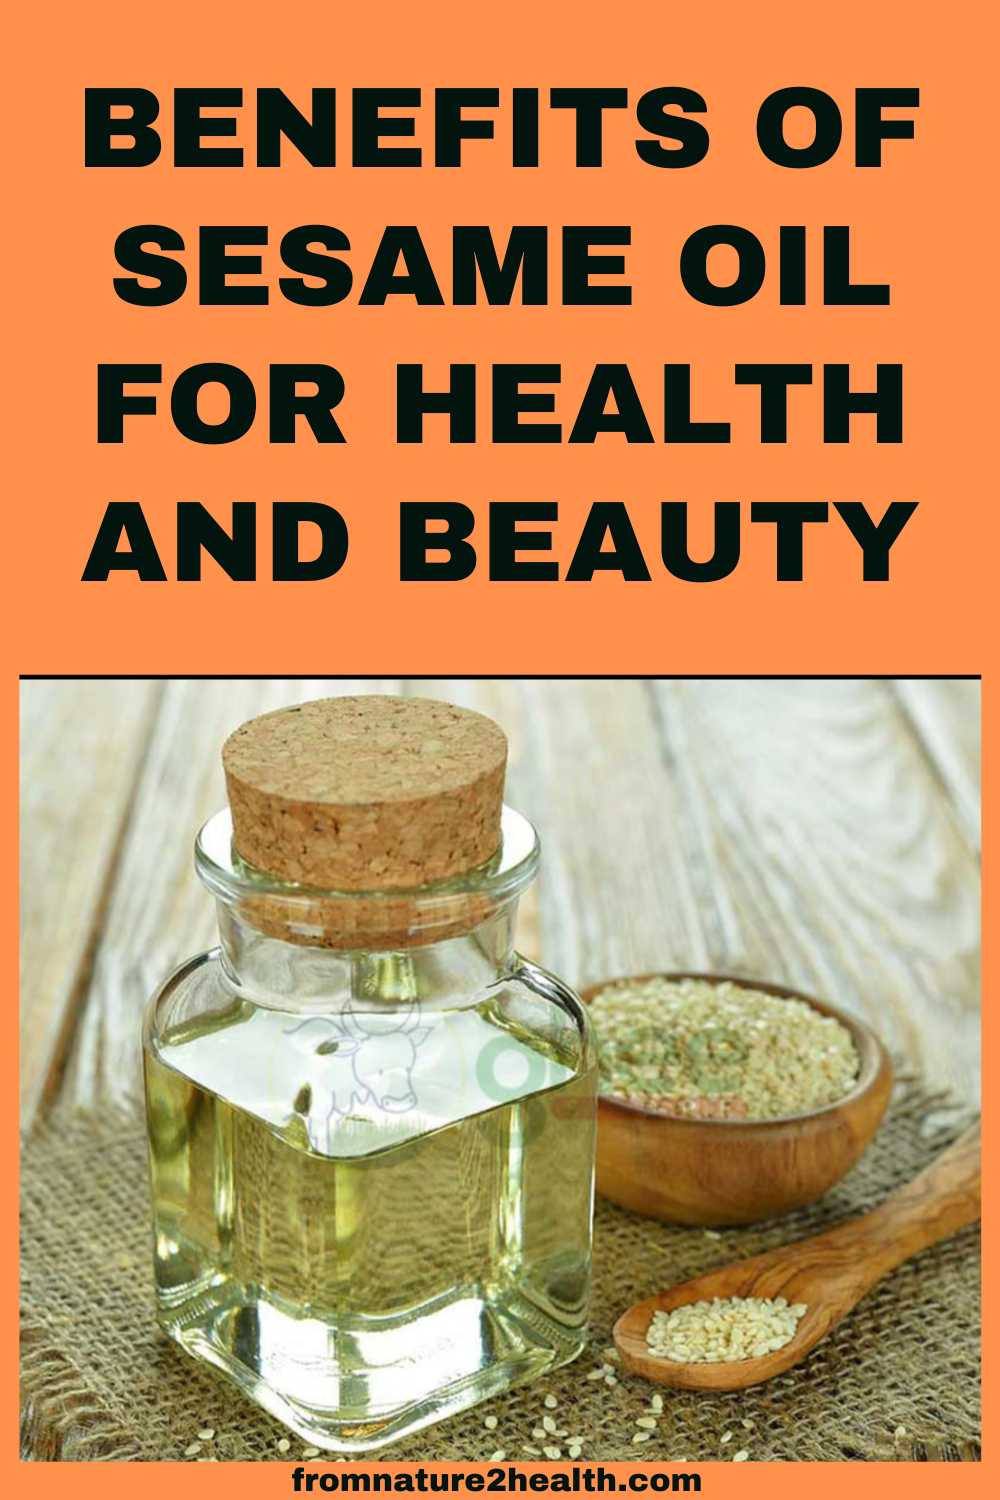 Benefits of Sesame Oil for Health and Beauty